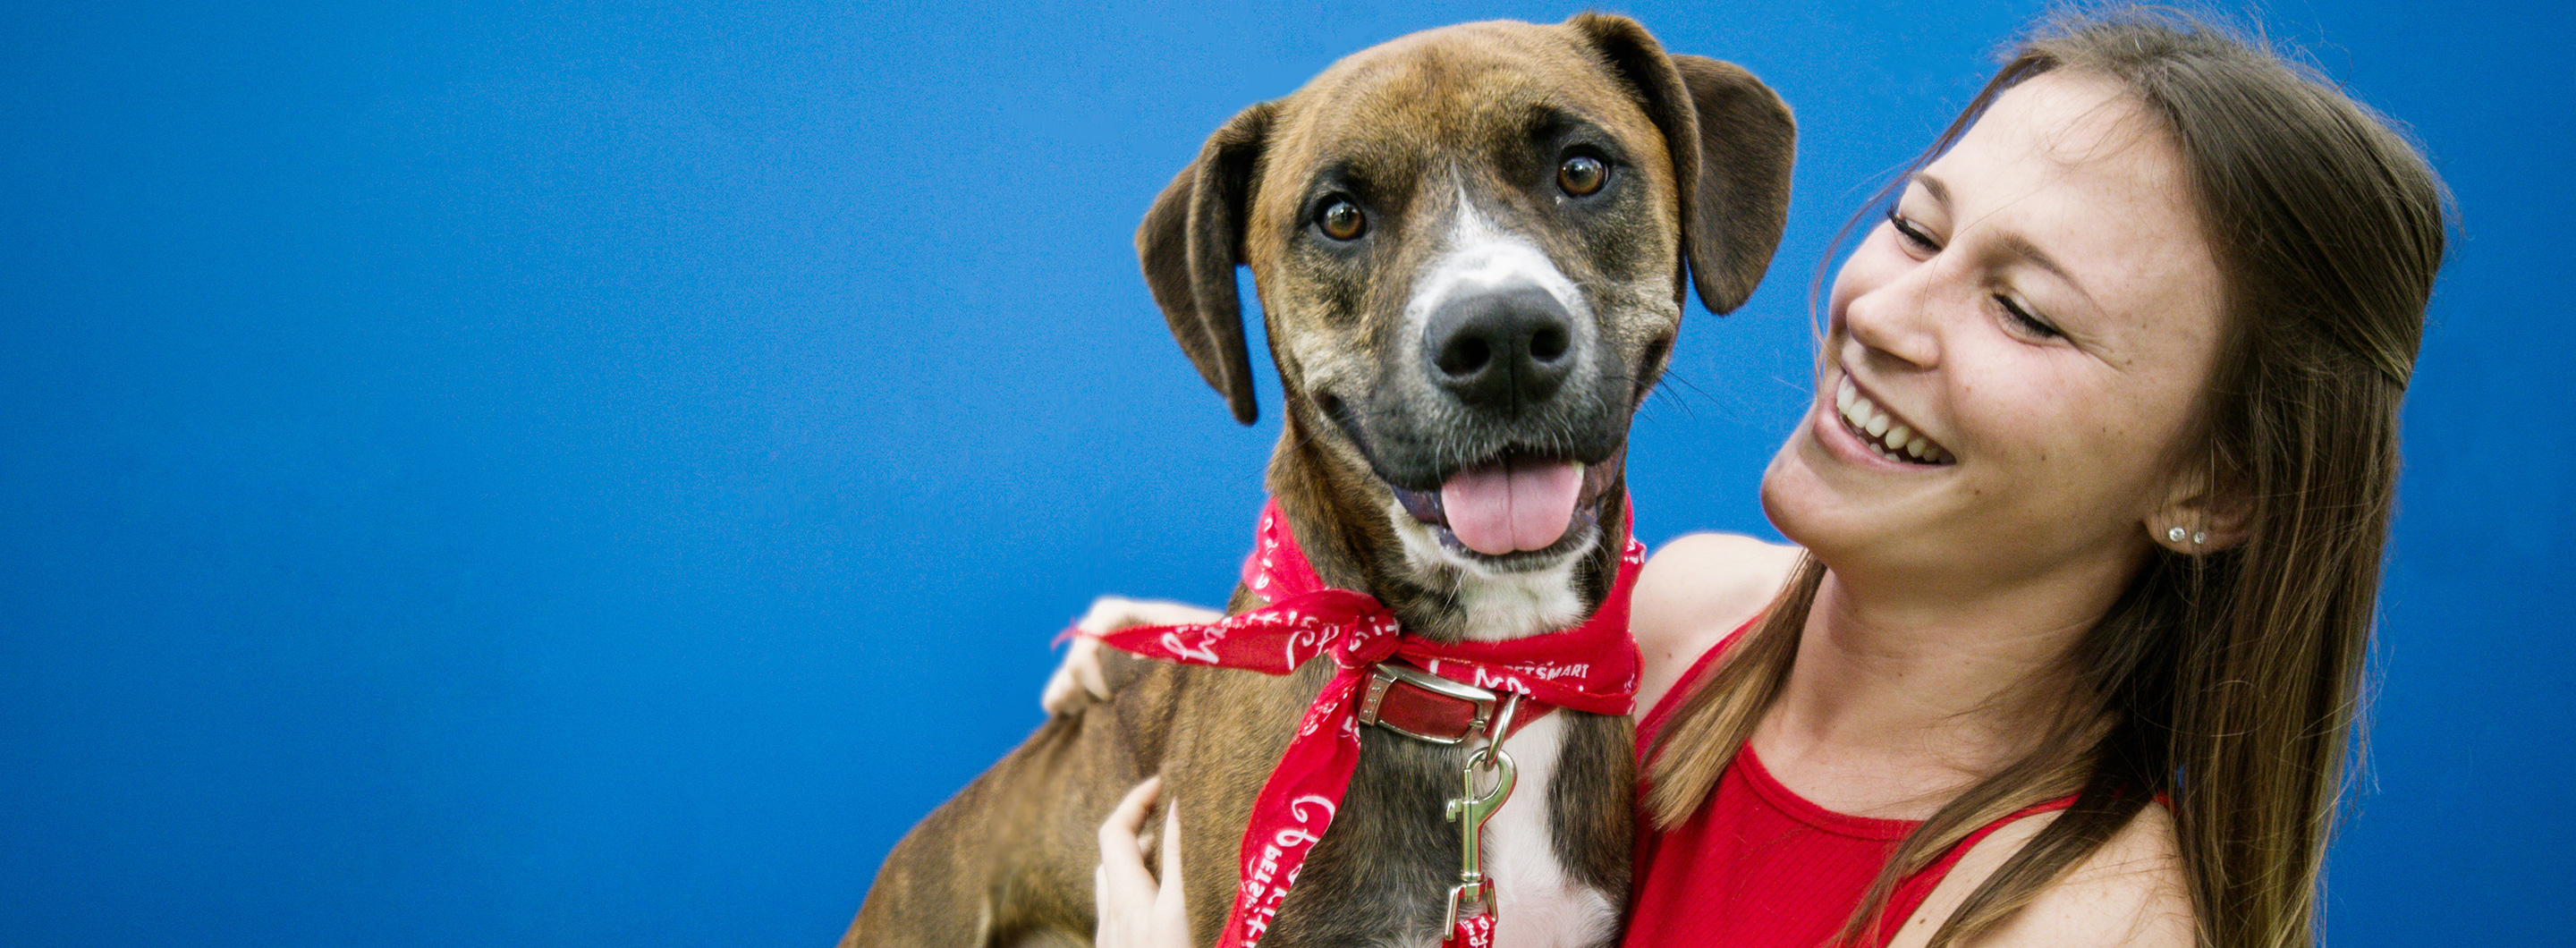 Pet Adoption Events | PetSmart Charities